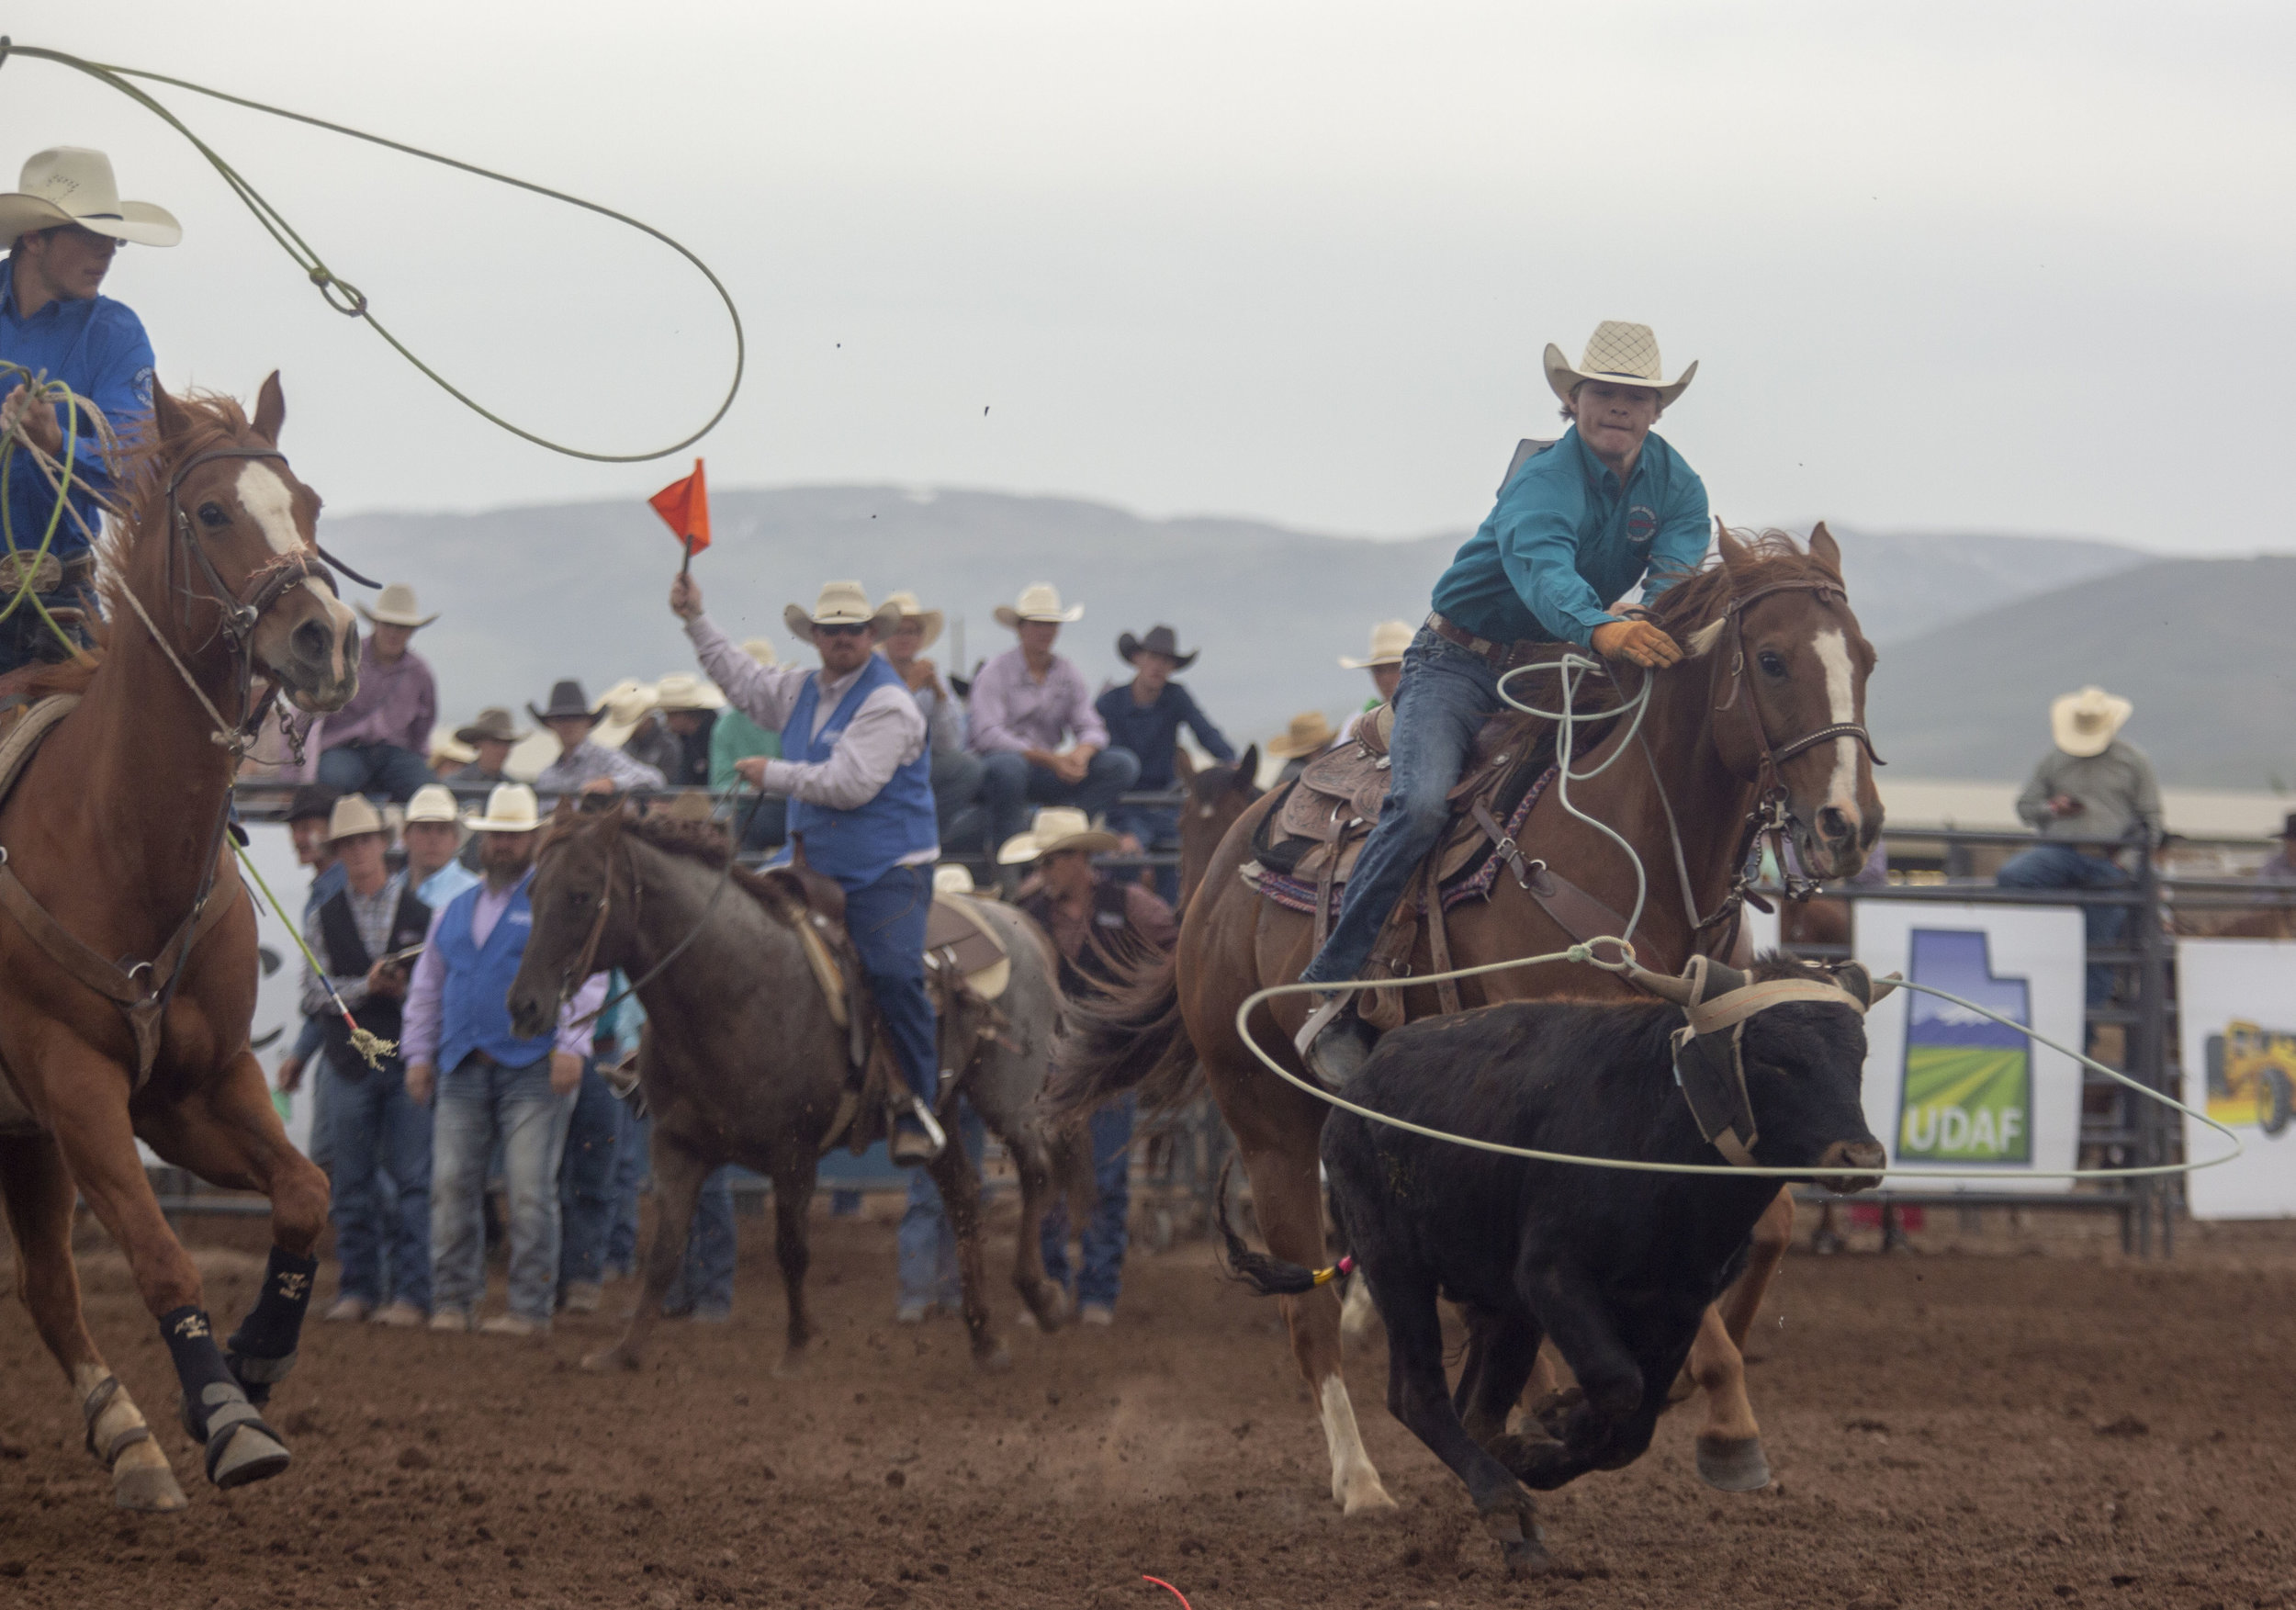 Students lasso a calf in the team roping event at the Utah High School Rodeo Association Finals.